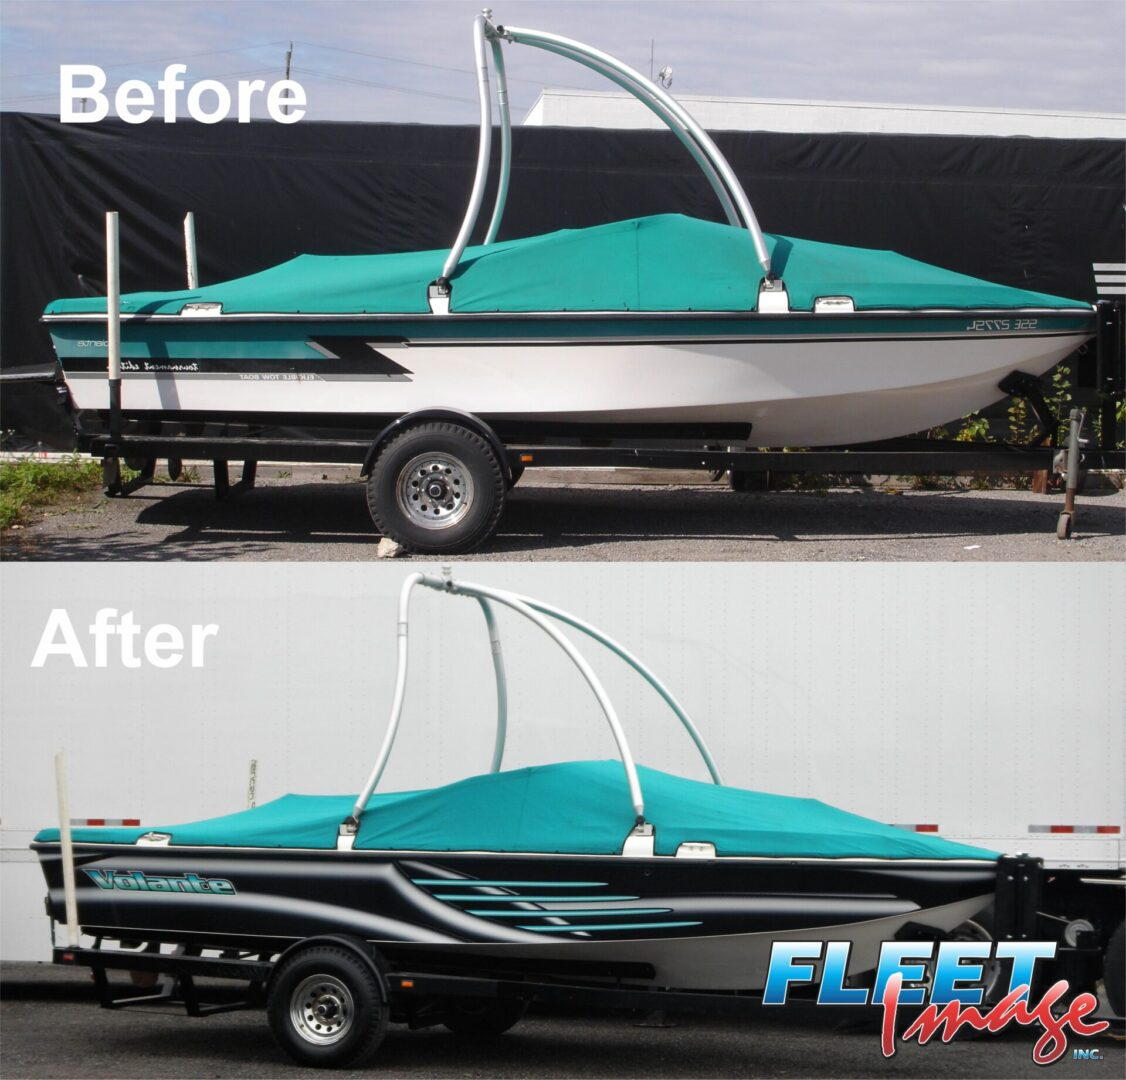 Before and after Volante sticker on a boat